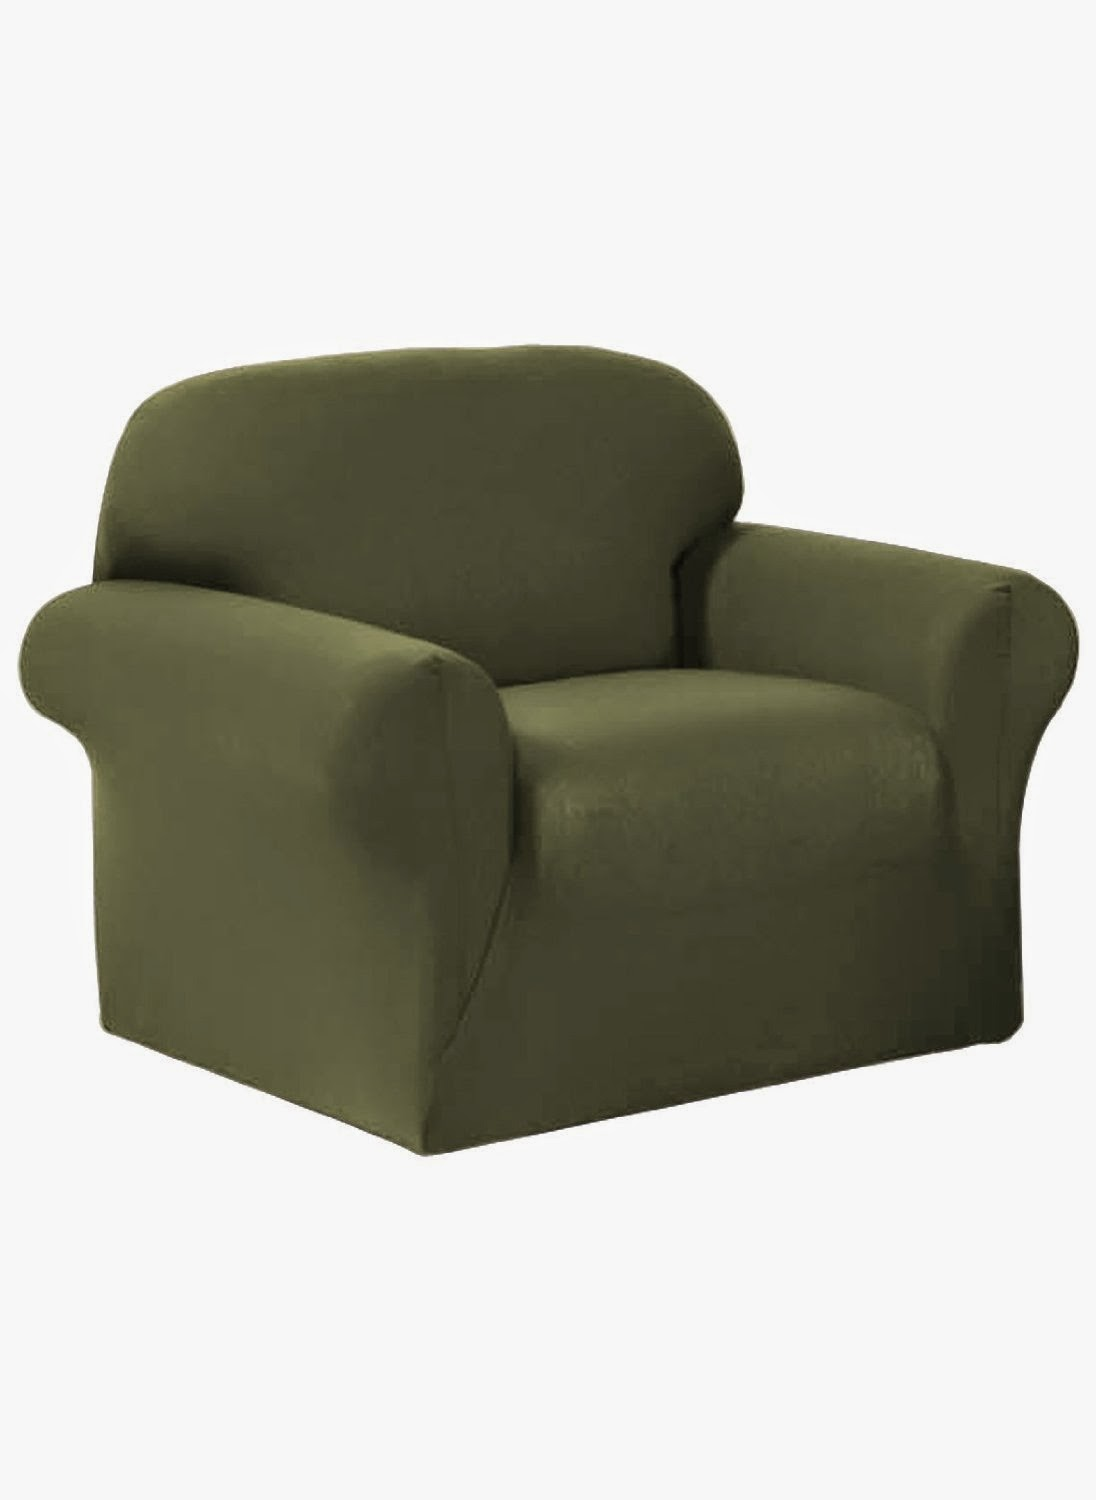 Dual Reclining Sofa Slipcover Darrin 89 Leather At Jcpenney Cheap Recliner Sofas For Sale April 2015